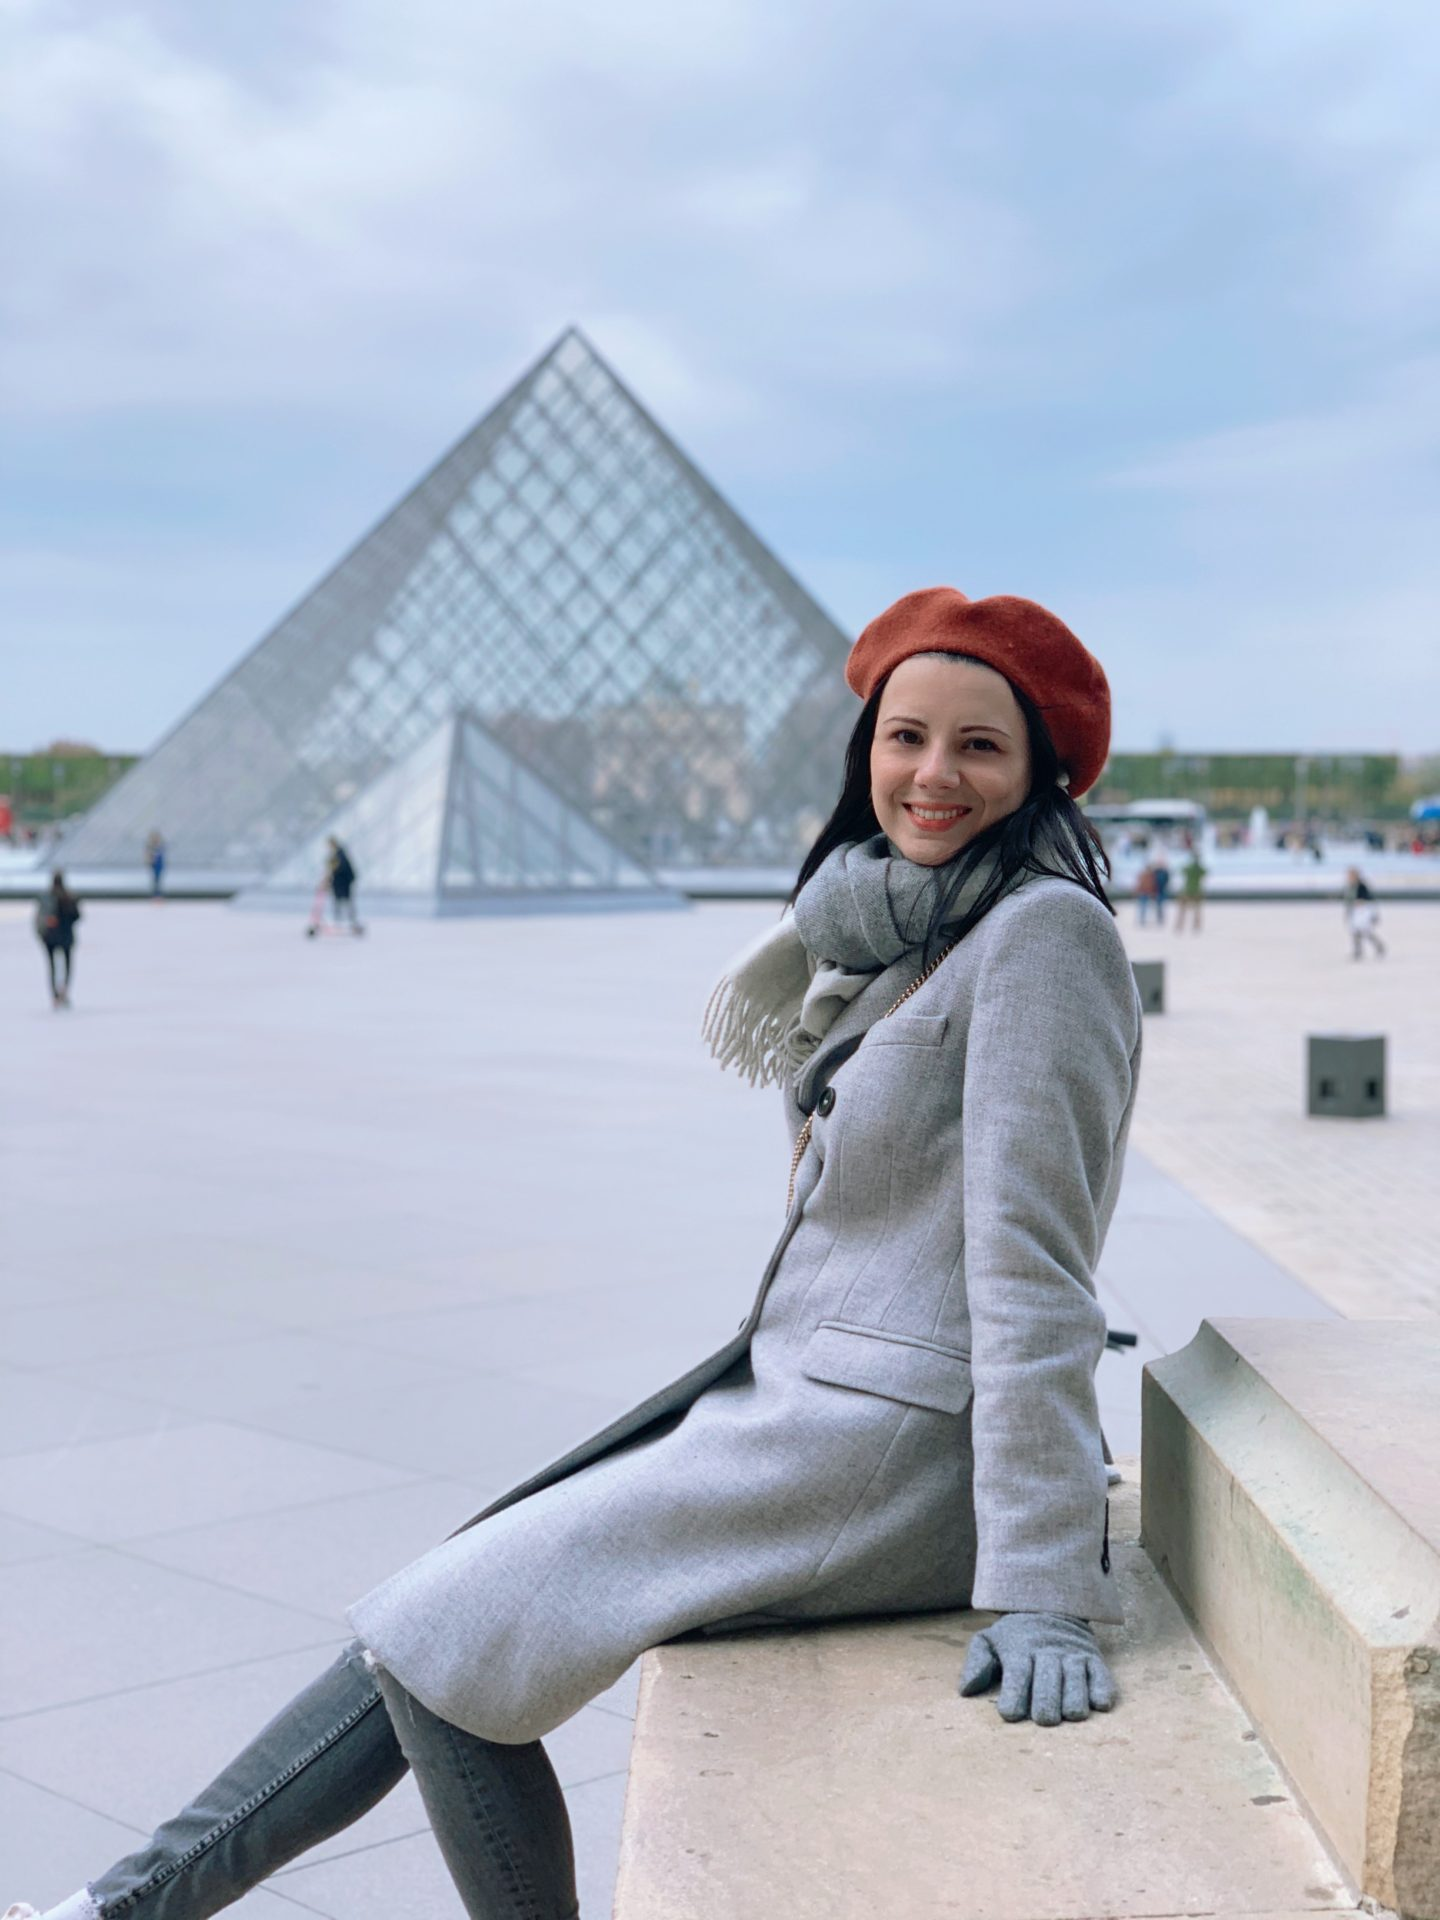 The Louvre museum, the most instagrammable places in Paris